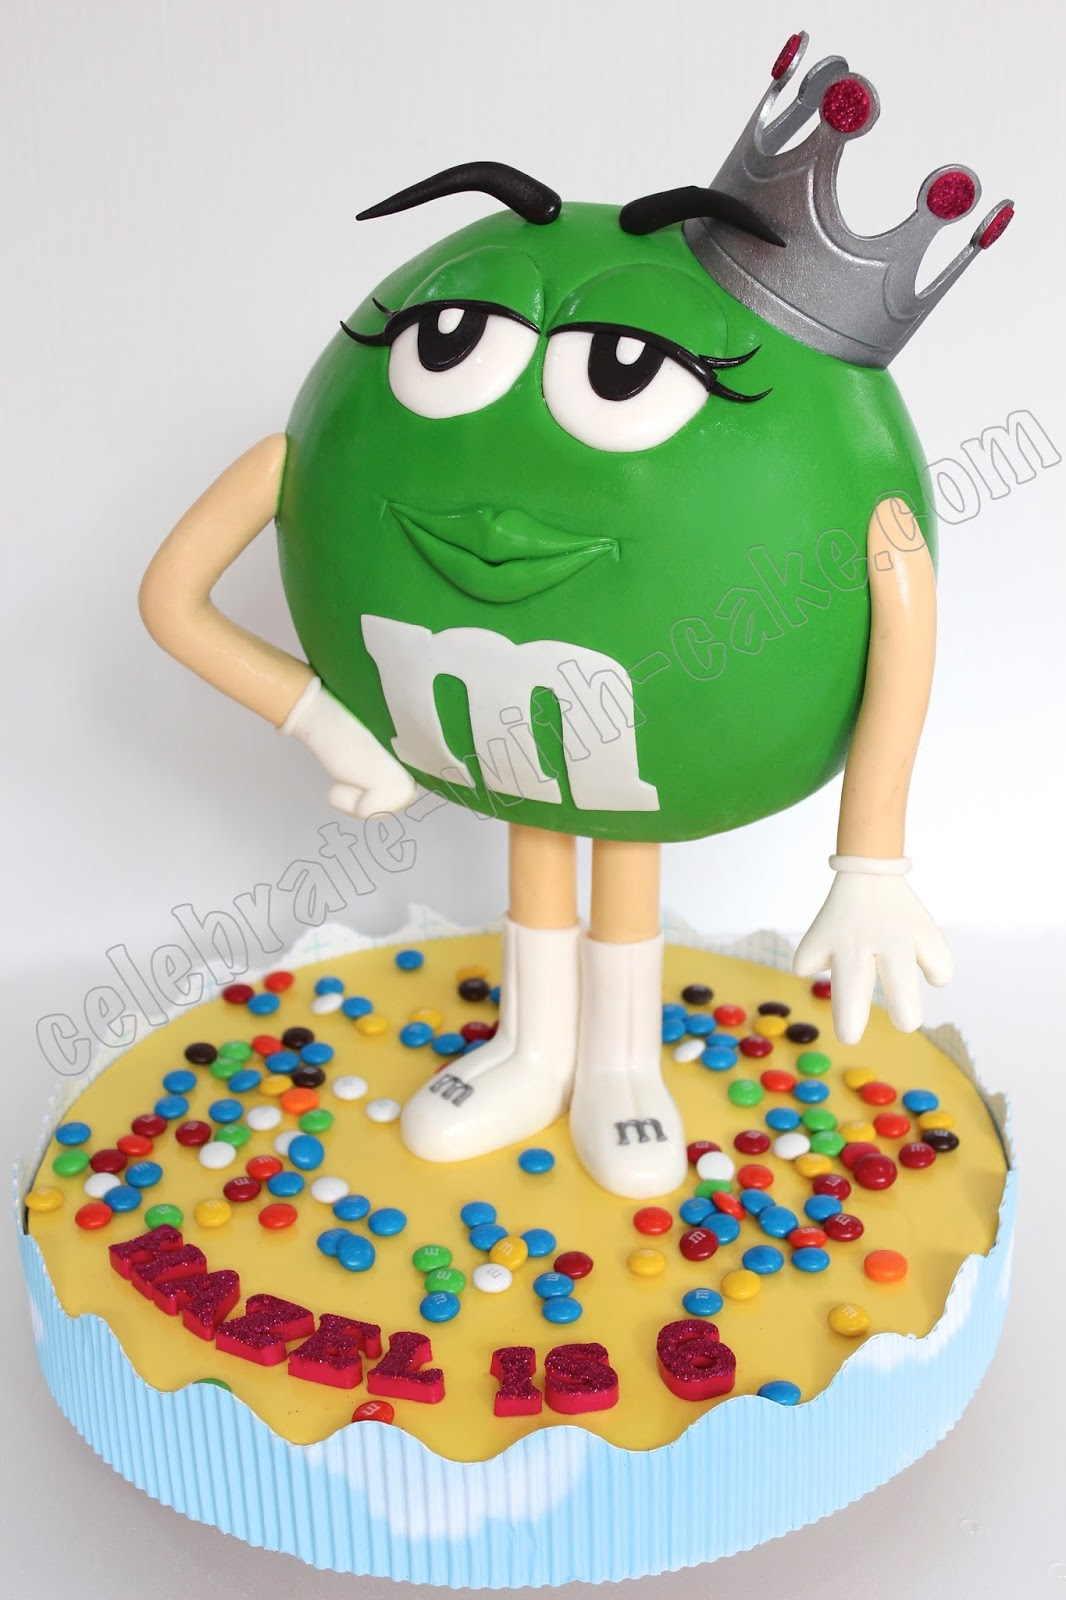 Celebrate with Cake Sculpted Green MM Cake